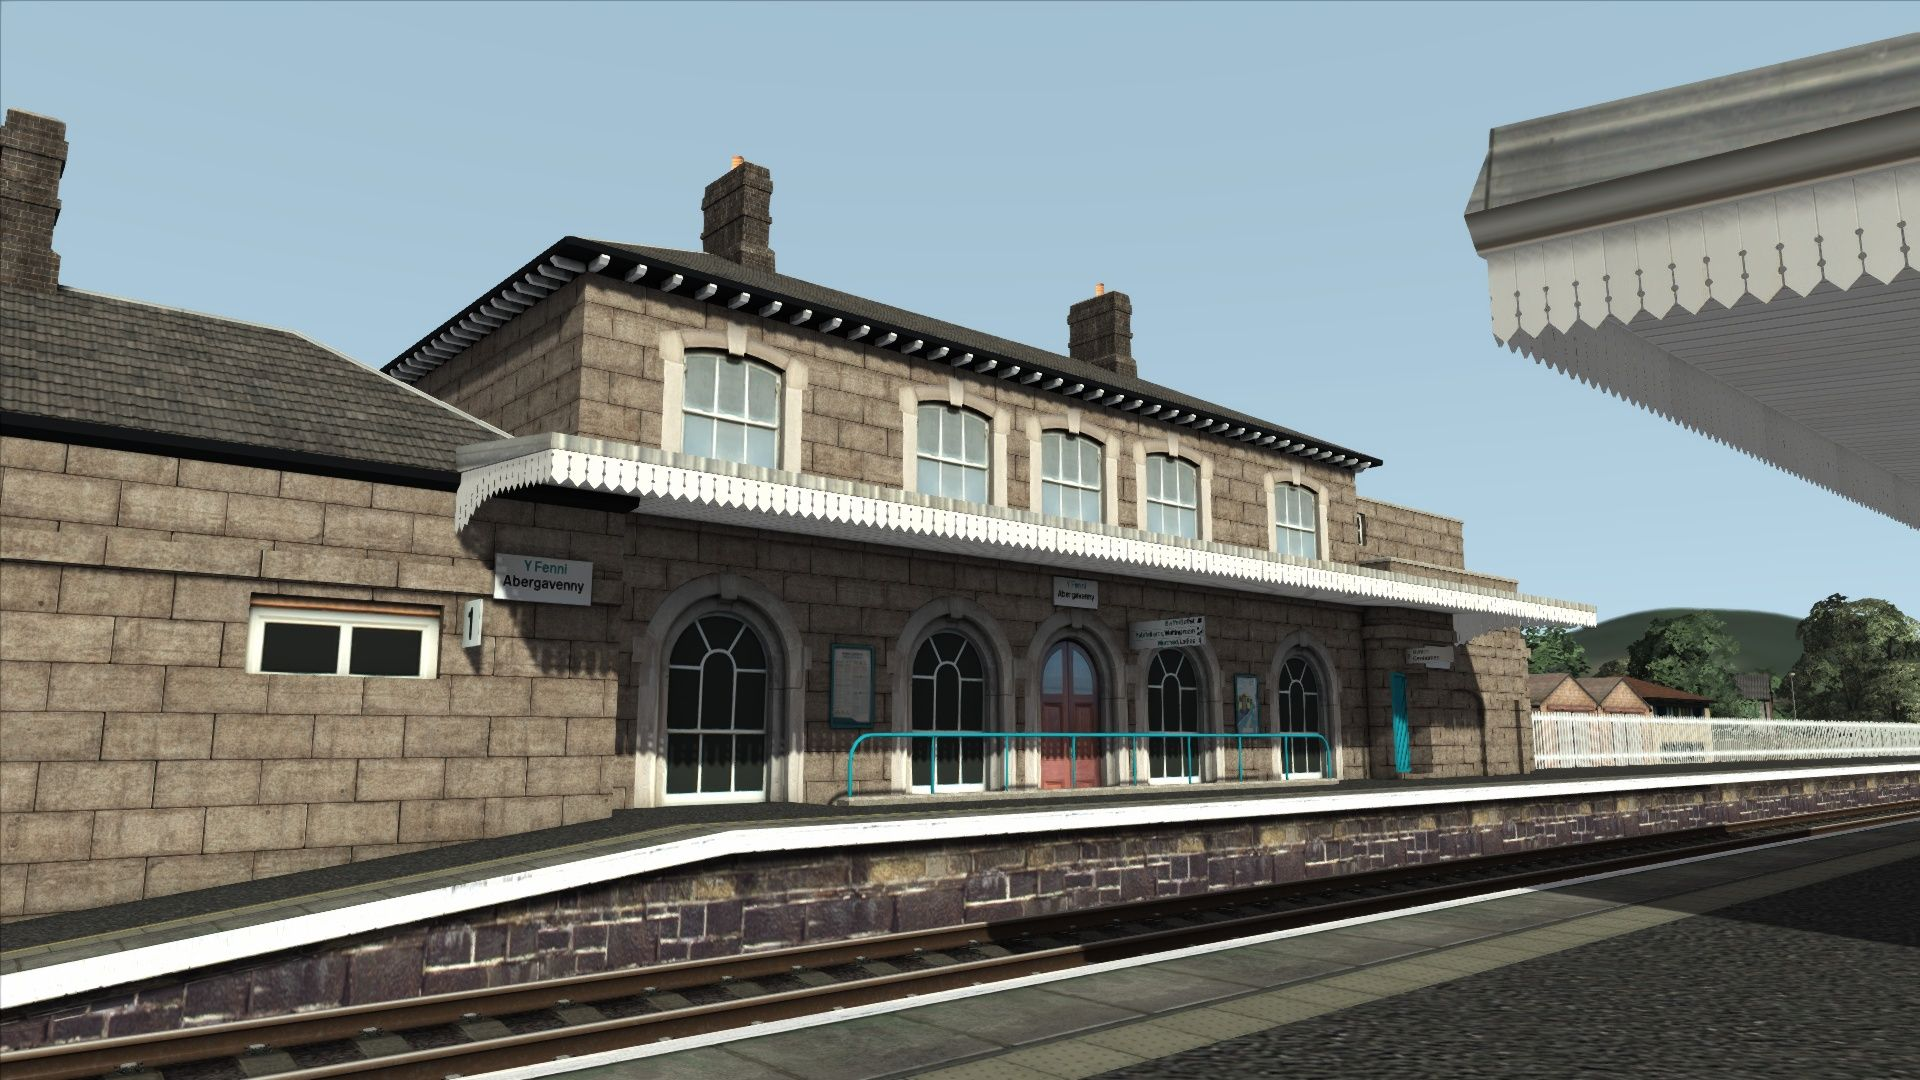 Screenshot_[BMG] Welsh Marches Line - Newport to Shrewsbury_51.81702--3.008